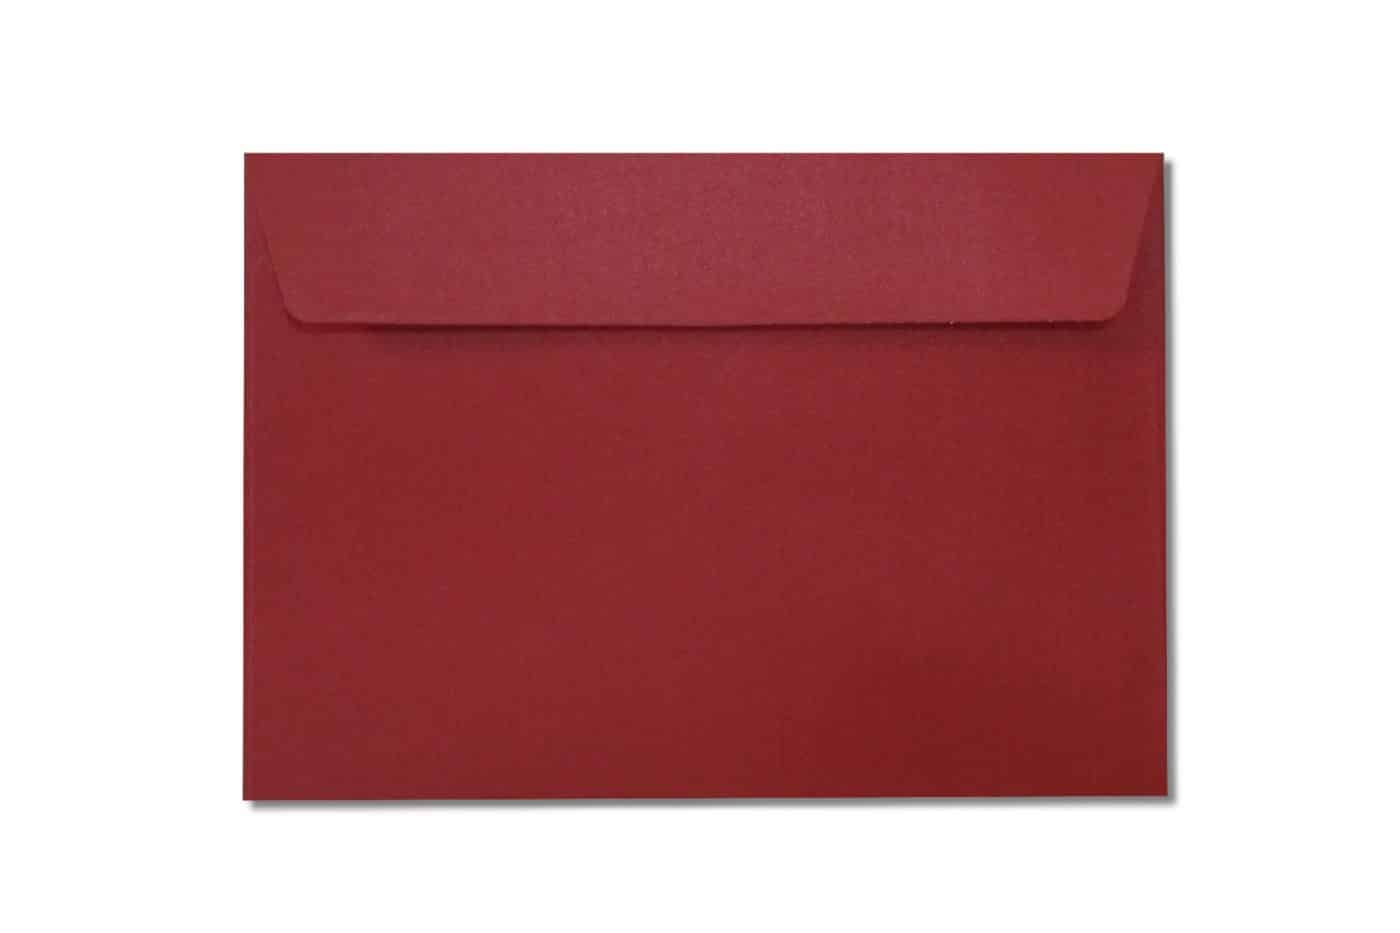 c6 metallic red envelopes